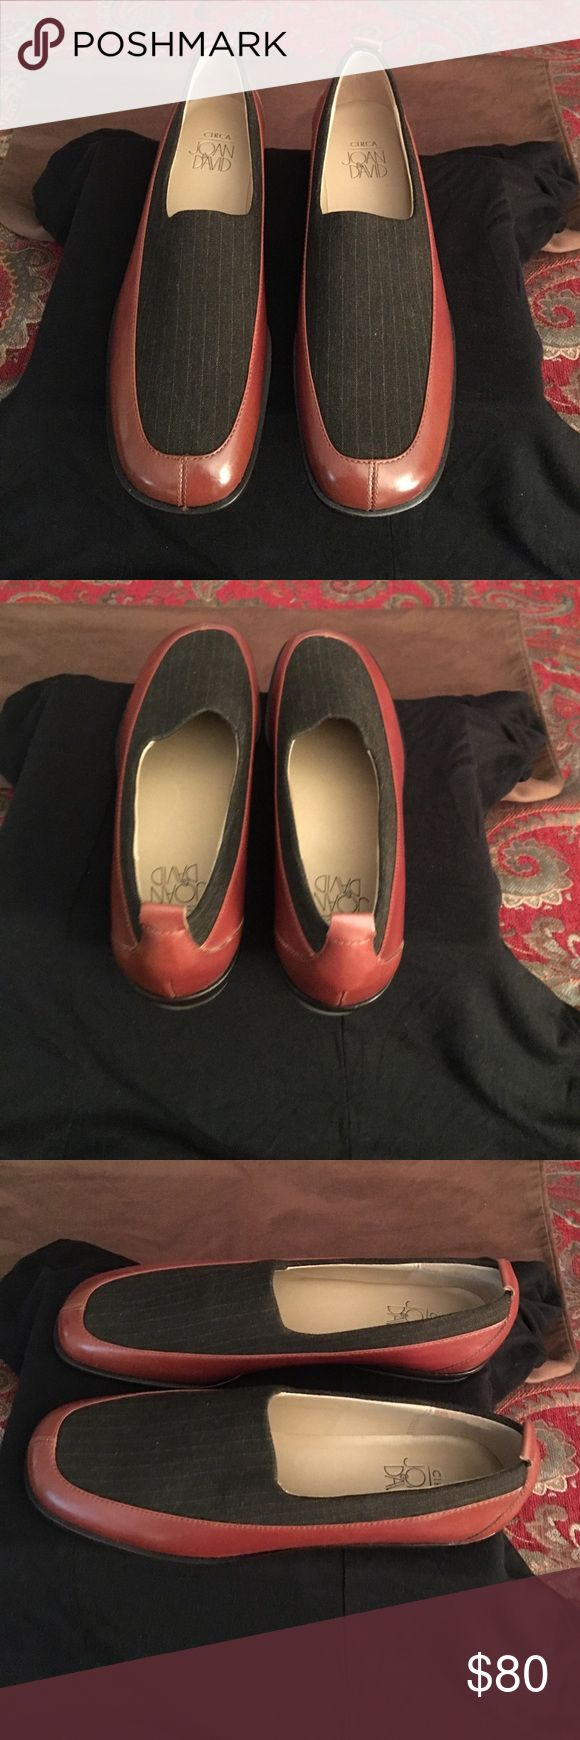 Circa Joan Women Loafers Shoes NWT Circa Joan Women Leather Loafers Shoes Circa Joan & David Shoes Flats & Loafers